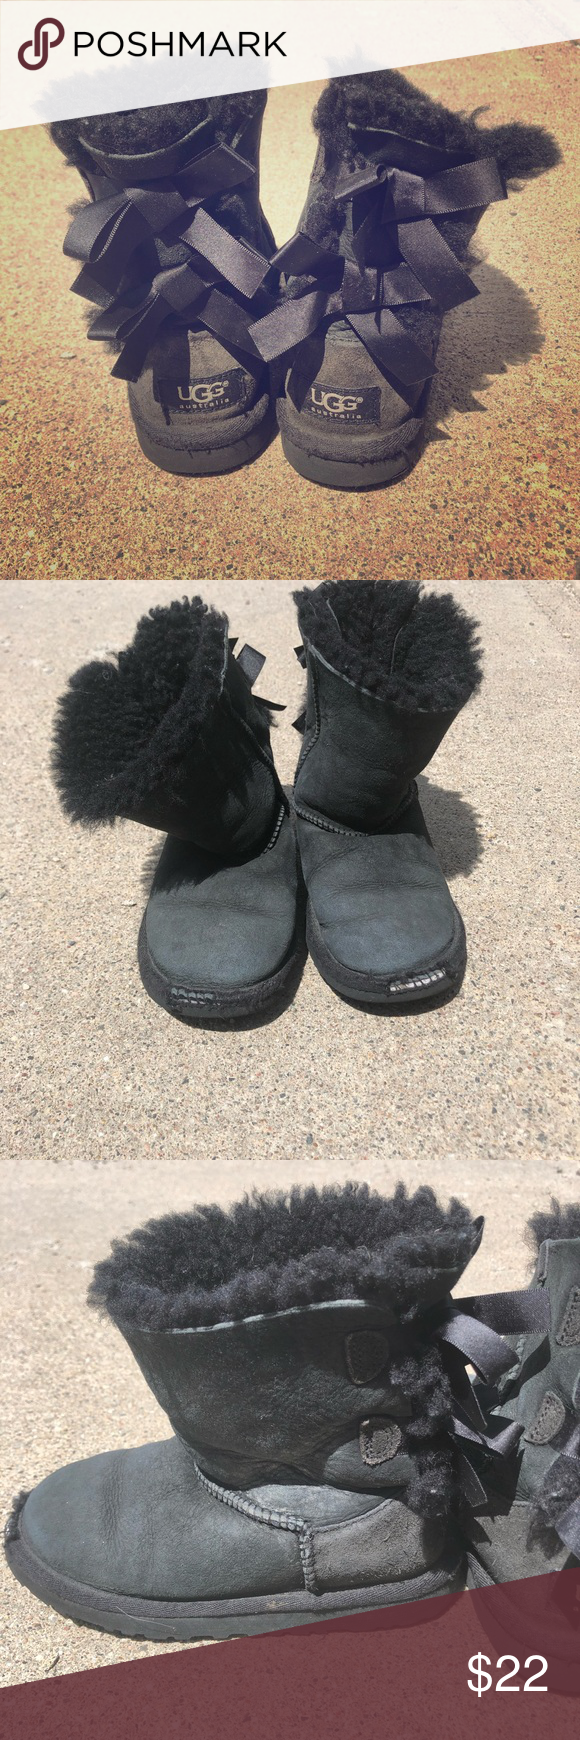 Ugg Boots! Bailey Bow Girls Sz 13 Used but a lot of life left! Size 13 girls black Ugg boots with bow detail on back. Style name is Bailey Bow. Retail for $149. UGG Shoes Boots #uggbootsoutfitblackgirl Ugg Boots! Bailey Bow Girls Sz 13 Used but a lot of life left! Size 13 girls black Ugg boots with bow detail on back. Style name is Bailey Bow. Retail for $149. UGG Shoes Boots #uggbootsoutfitblackgirl